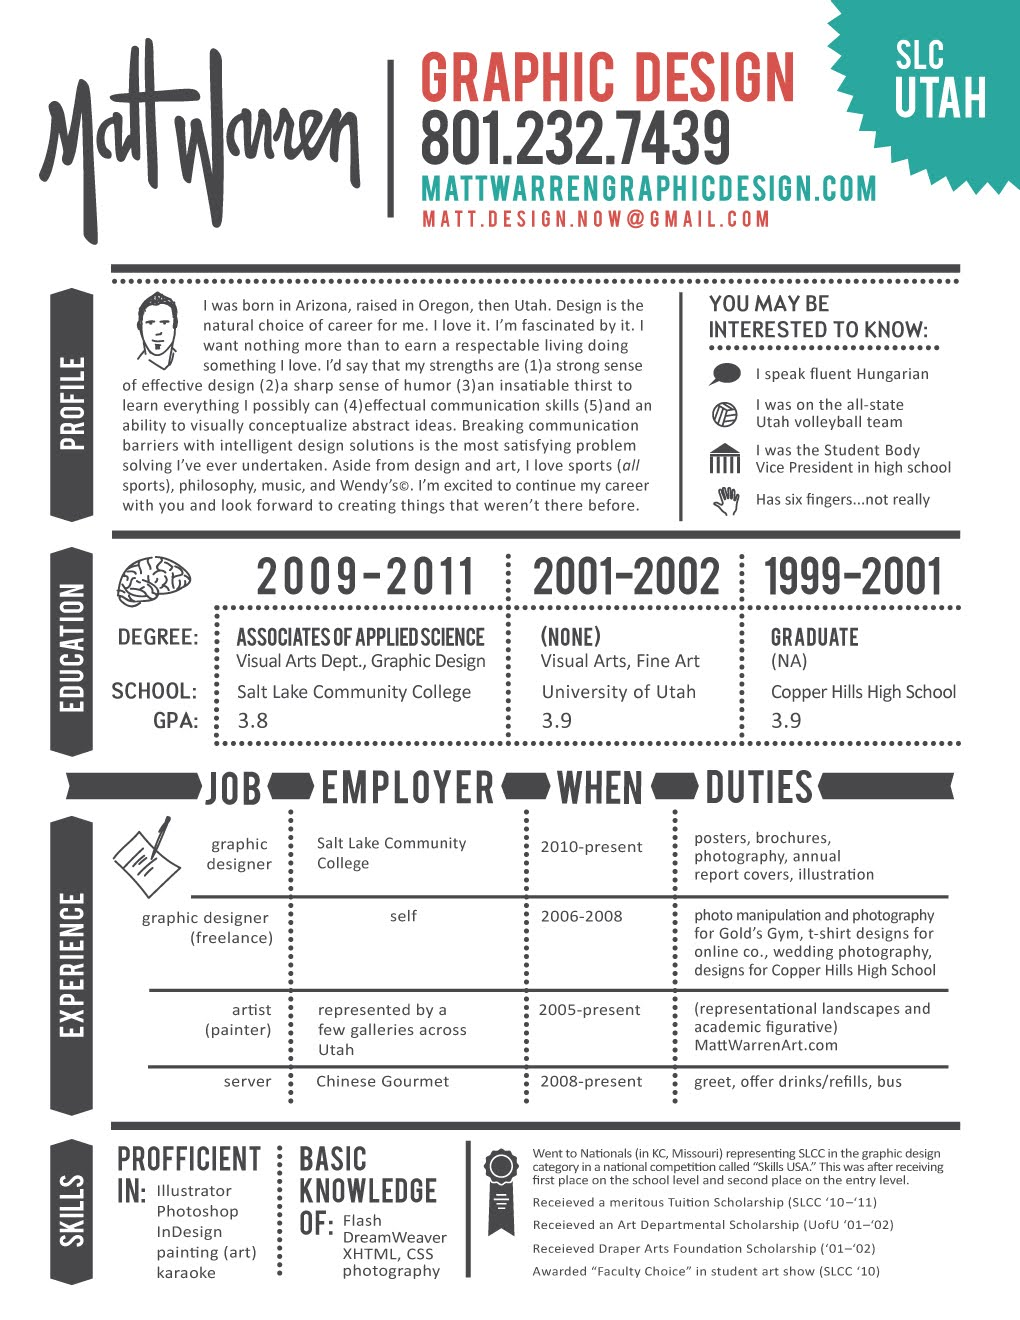 Opposenewapstandardsus  Ravishing  Images About Hire Me On Pinterest  Graphic Designer Resume  With Handsome  Images About Hire Me On Pinterest  Graphic Designer Resume Resume Design And Resume With Breathtaking Resume Finder Also Resume No Work Experience In Addition Should Resumes Be One Page And Teen Resume Template As Well As Engineering Resumes Additionally Loan Officer Resume From Pinterestcom With Opposenewapstandardsus  Handsome  Images About Hire Me On Pinterest  Graphic Designer Resume  With Breathtaking  Images About Hire Me On Pinterest  Graphic Designer Resume Resume Design And Resume And Ravishing Resume Finder Also Resume No Work Experience In Addition Should Resumes Be One Page From Pinterestcom